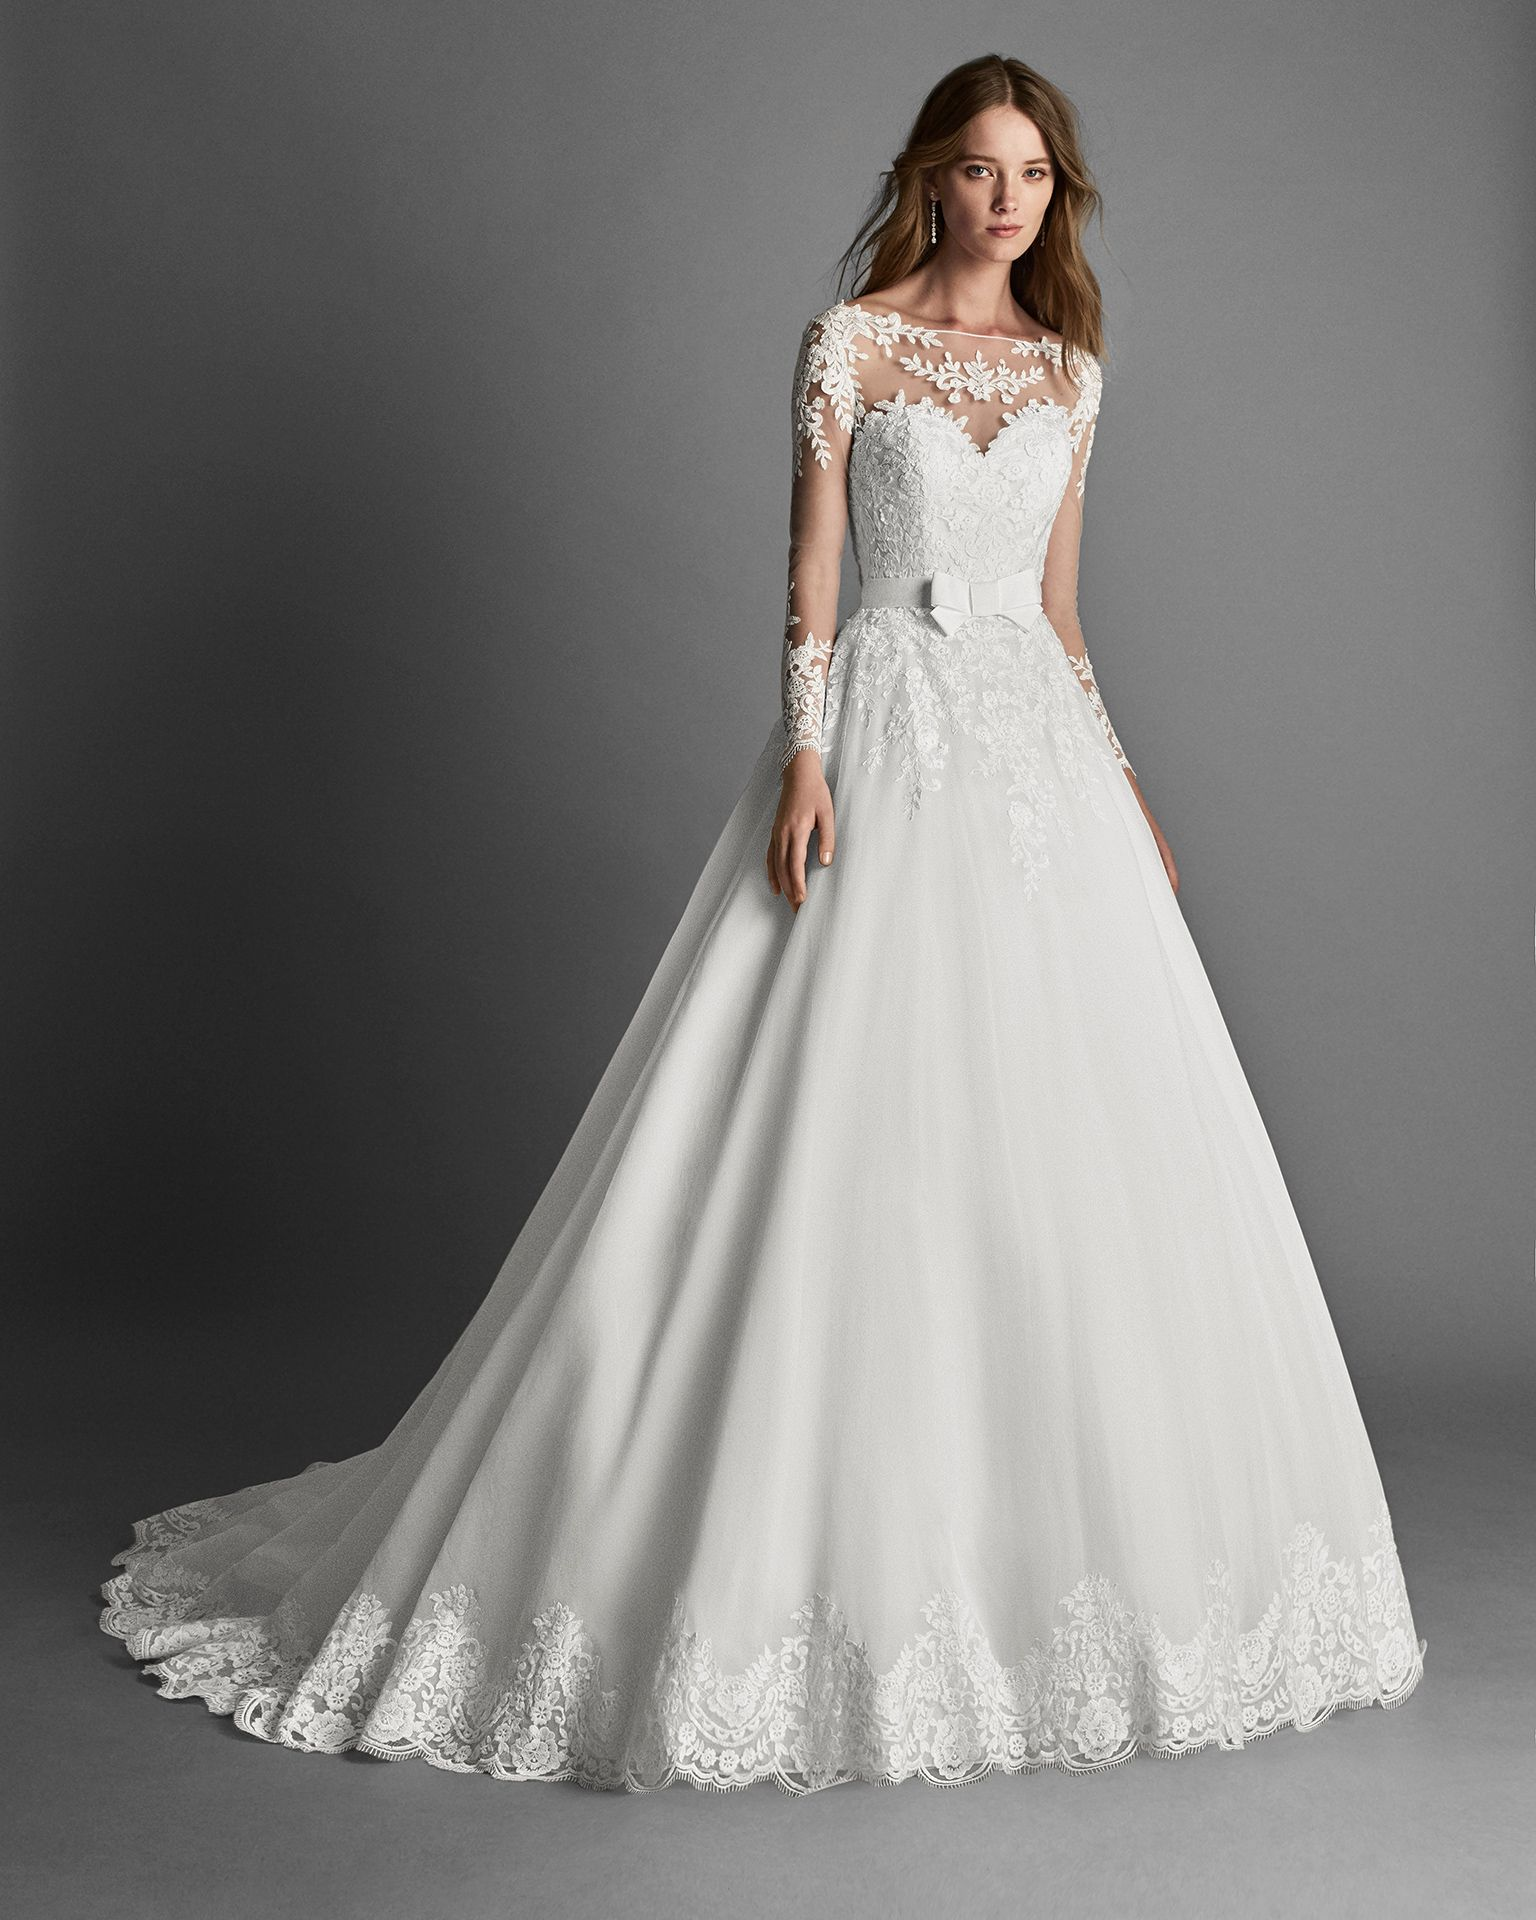 Princessstyle garza and lace wedding dress with long sleeves and